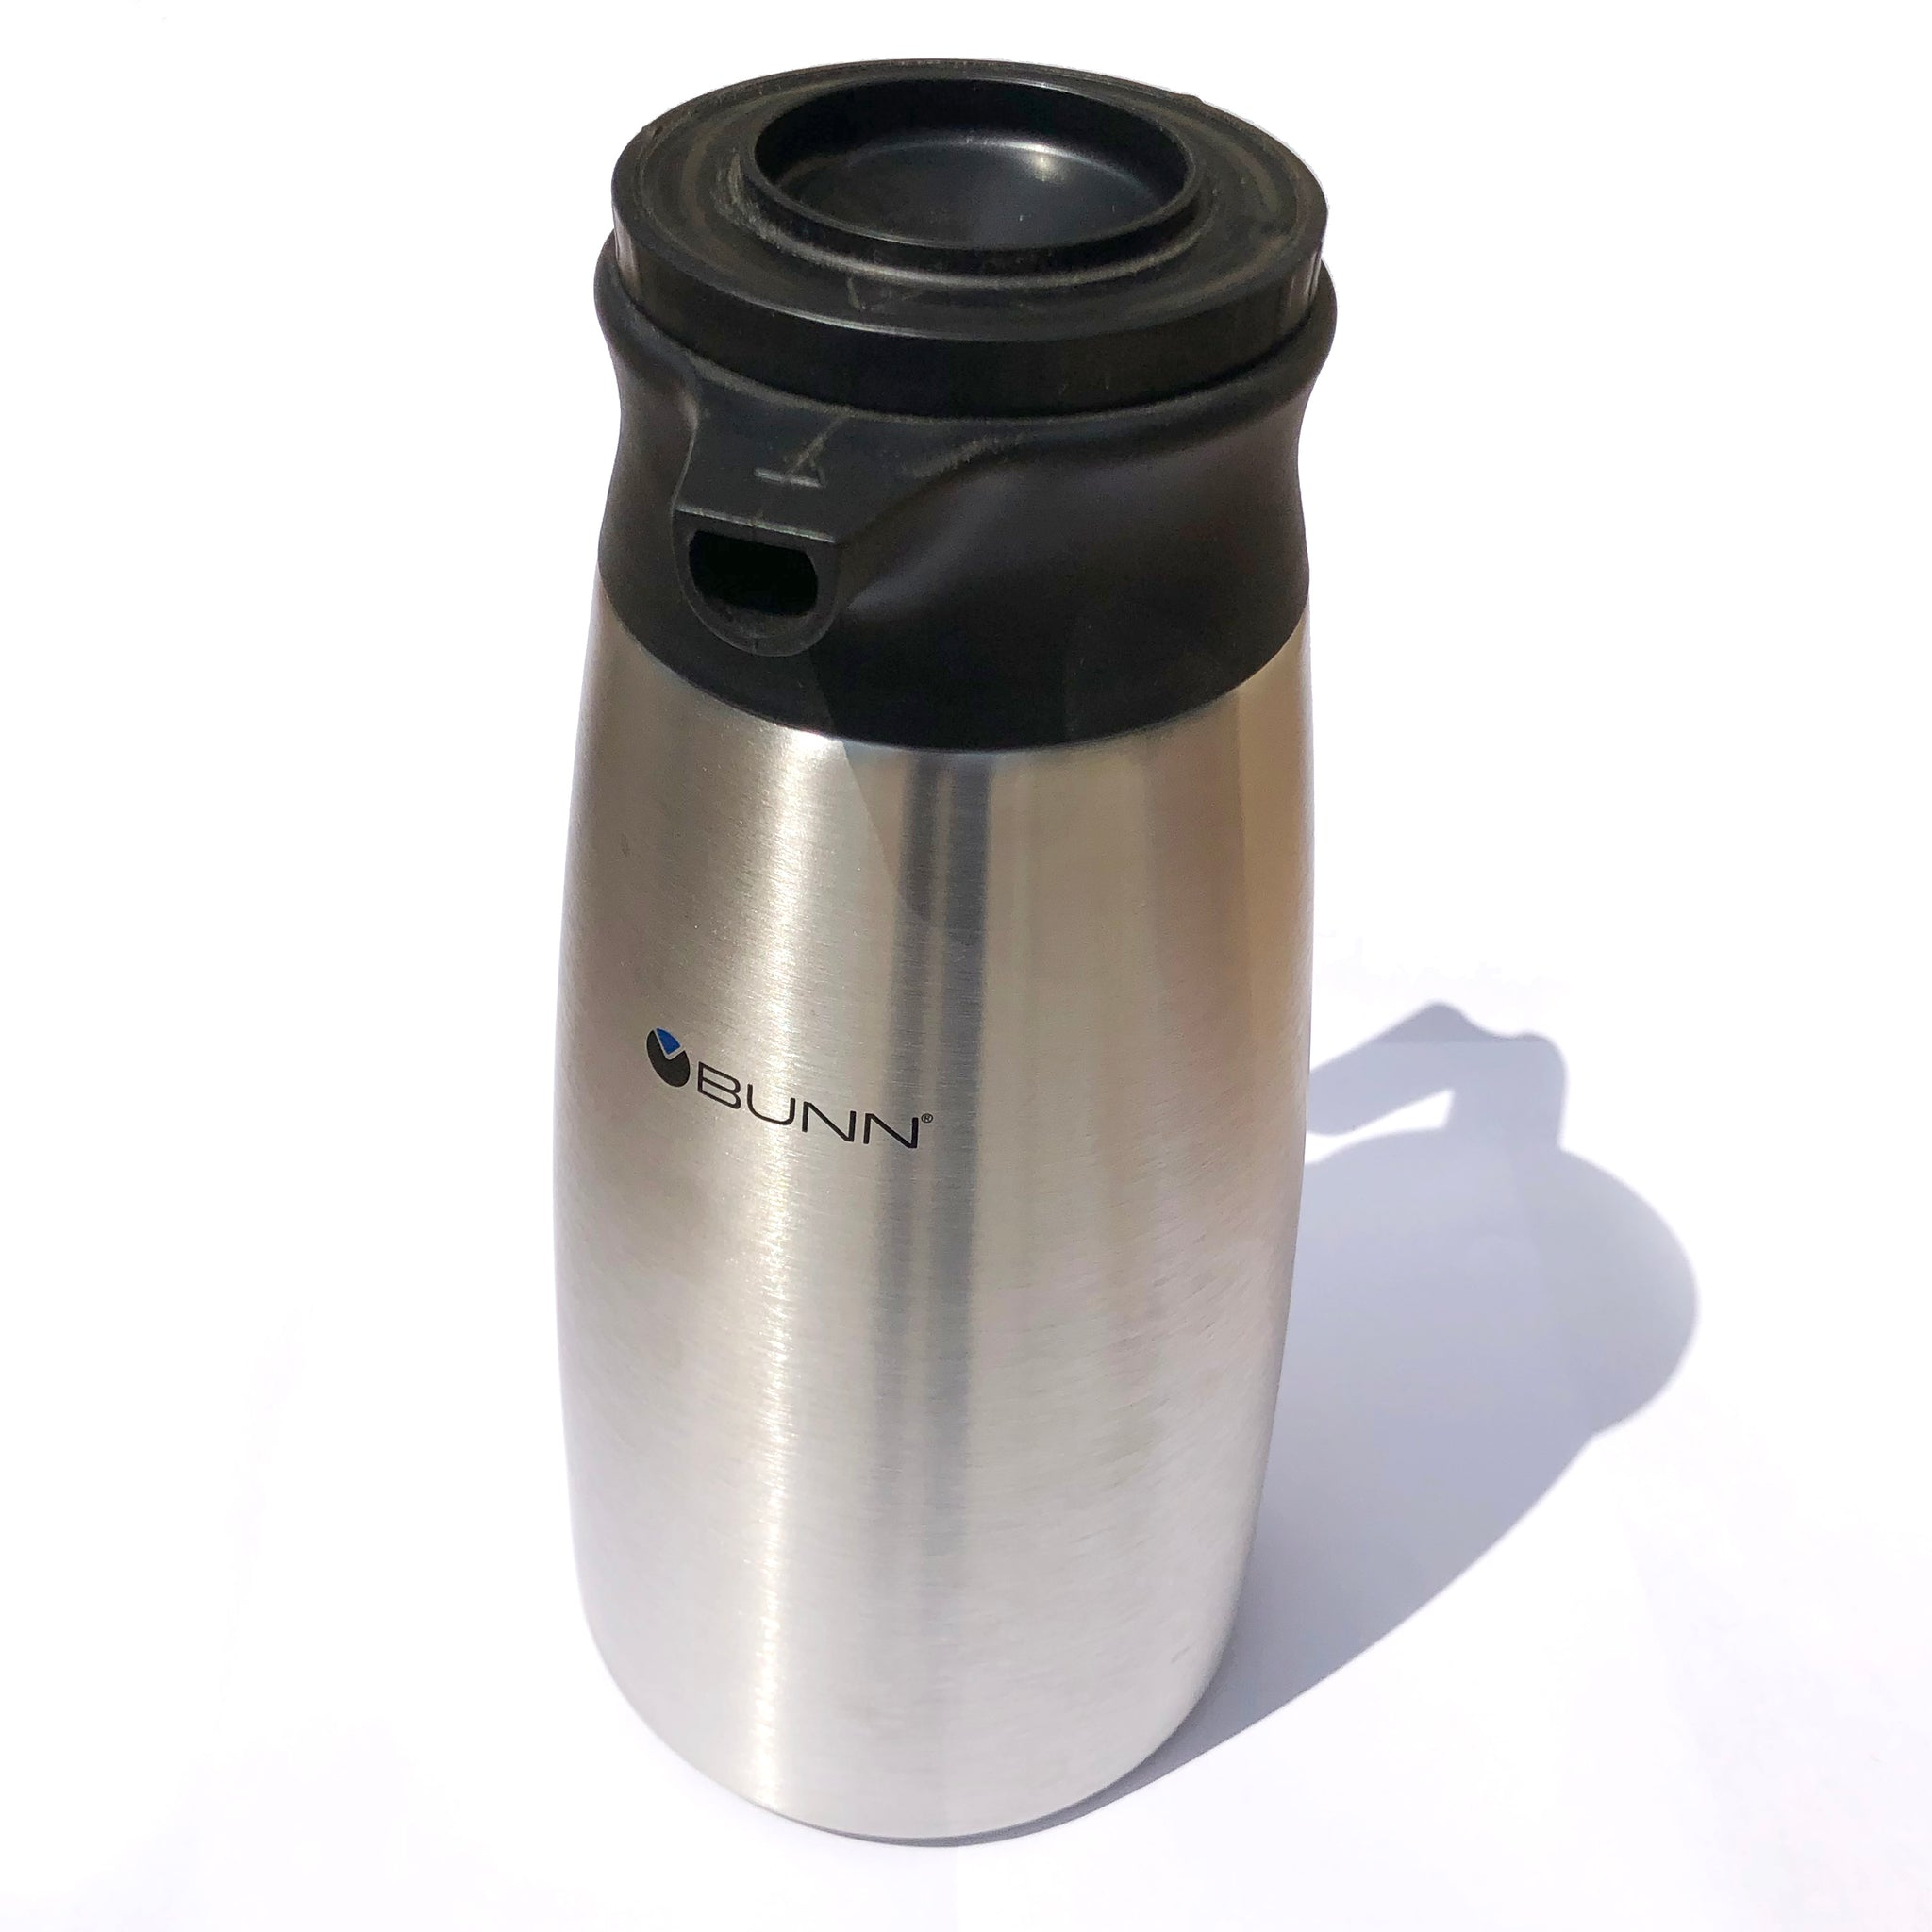 Bunn 1.8 Liter Stainless Steel Thermal Server